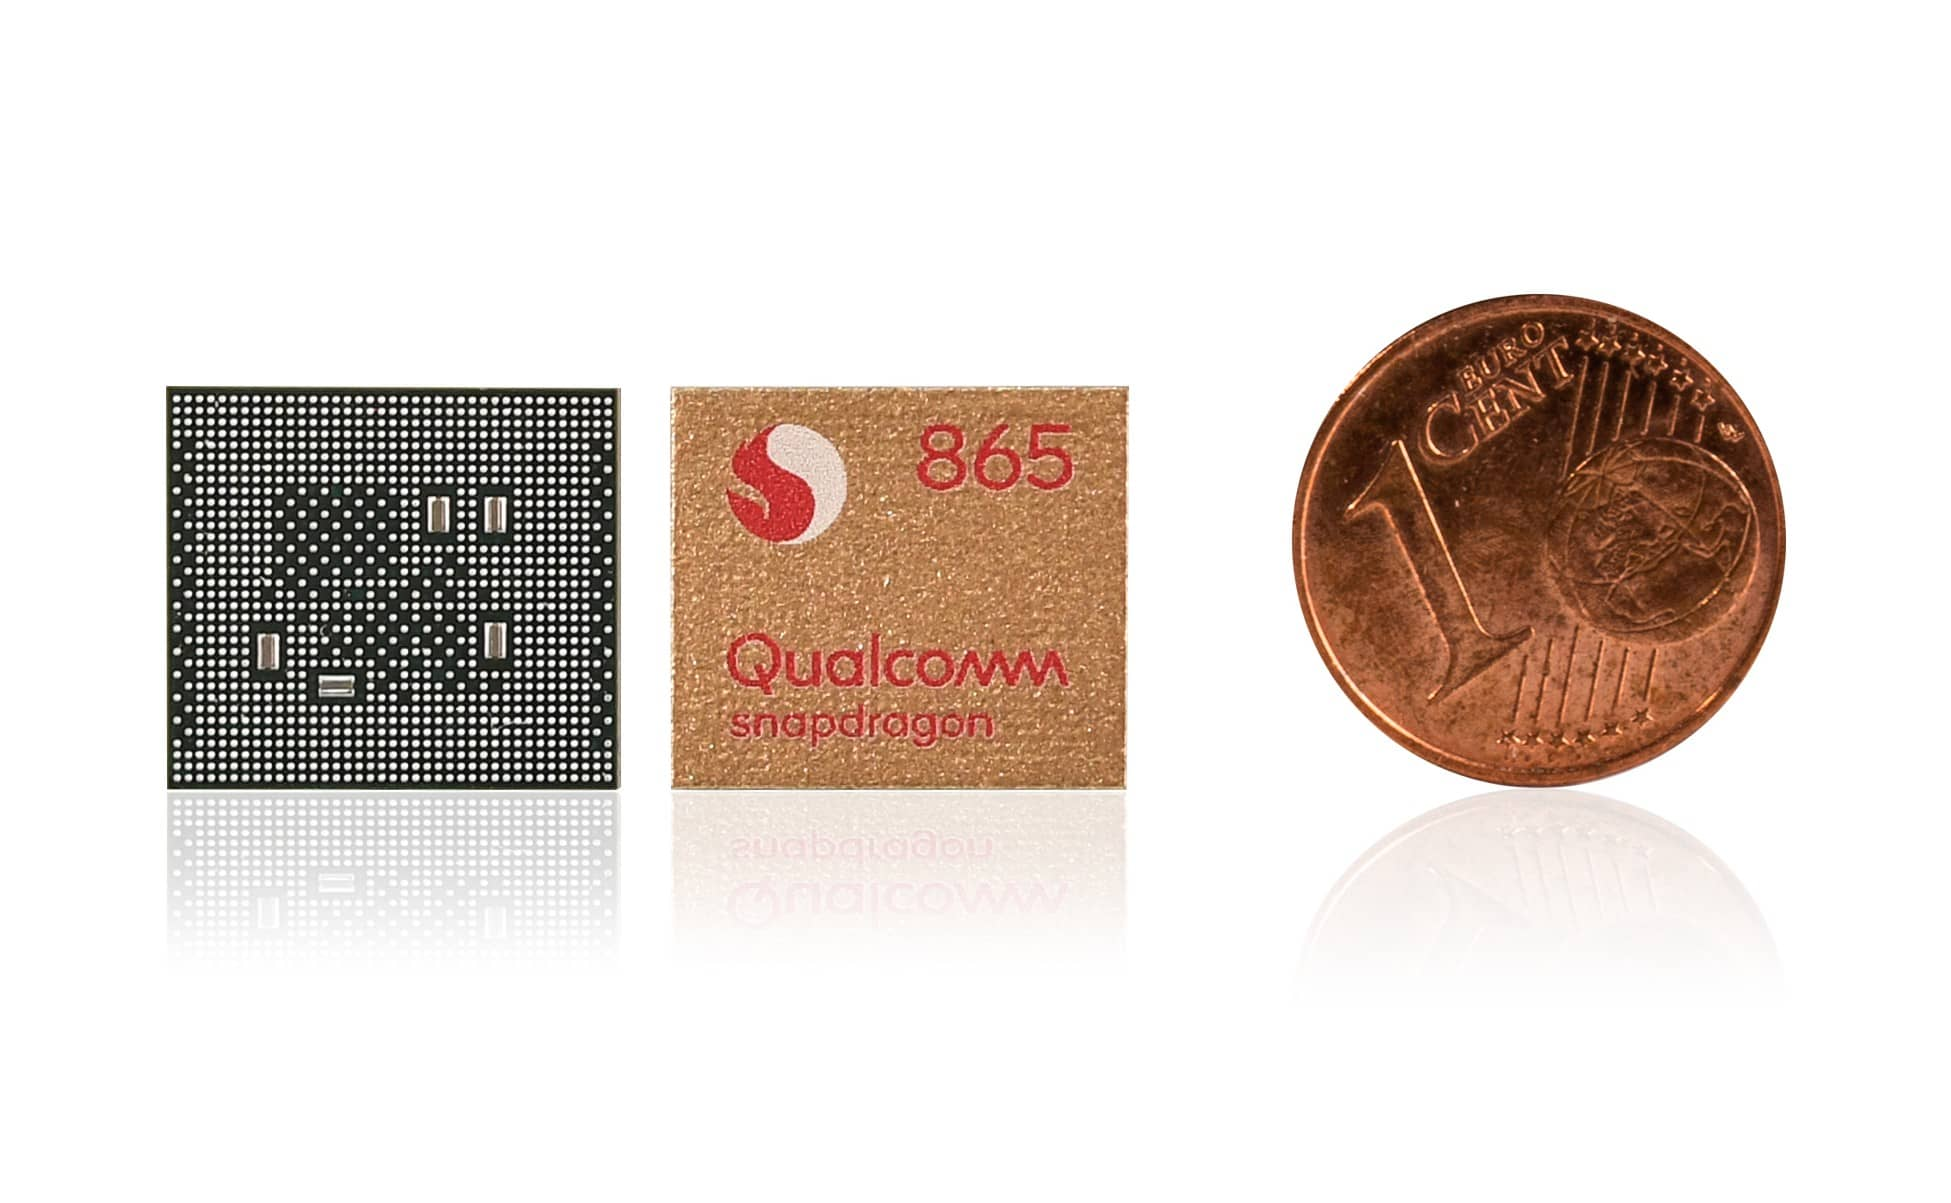 qualcomm snapdragon 865 coin